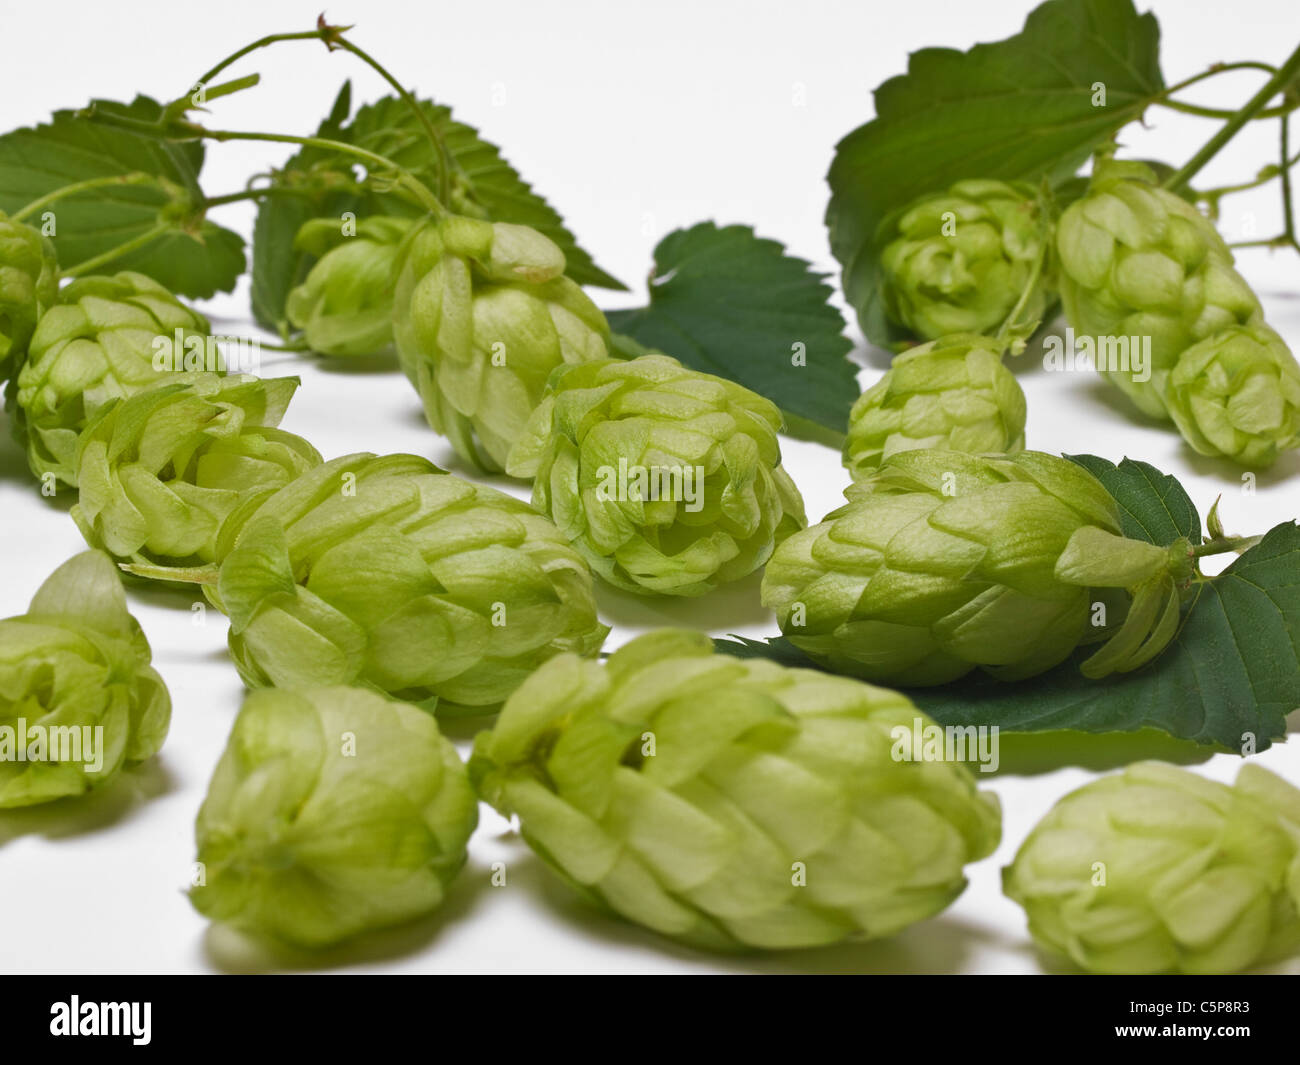 Detailansicht einer Hopfenpflanze | Detail photo of a hop plant Stock Photo